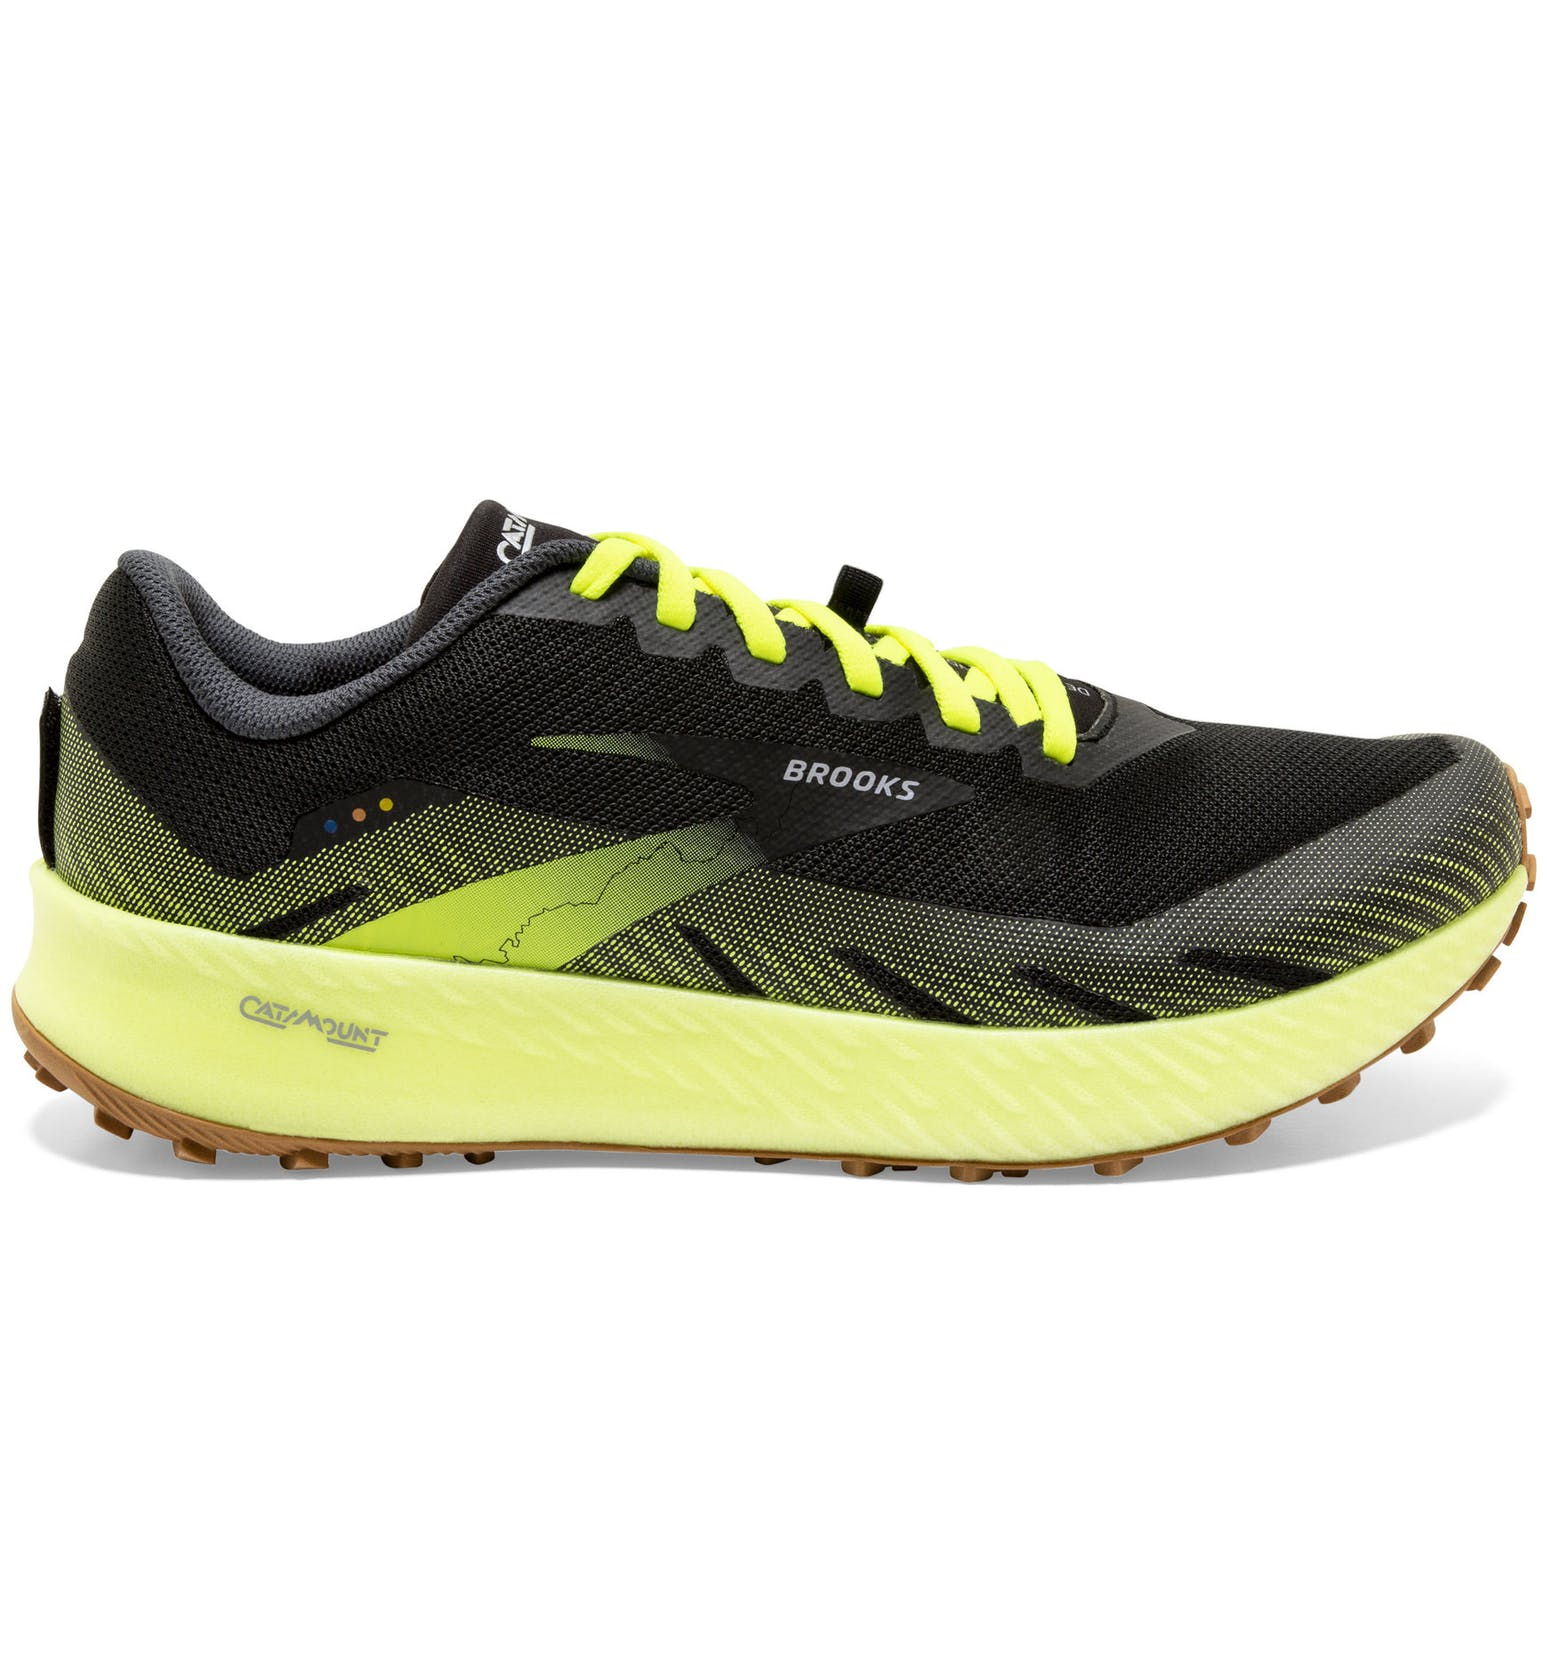 Brooks Catamount - Trailrunningschuh - Herren